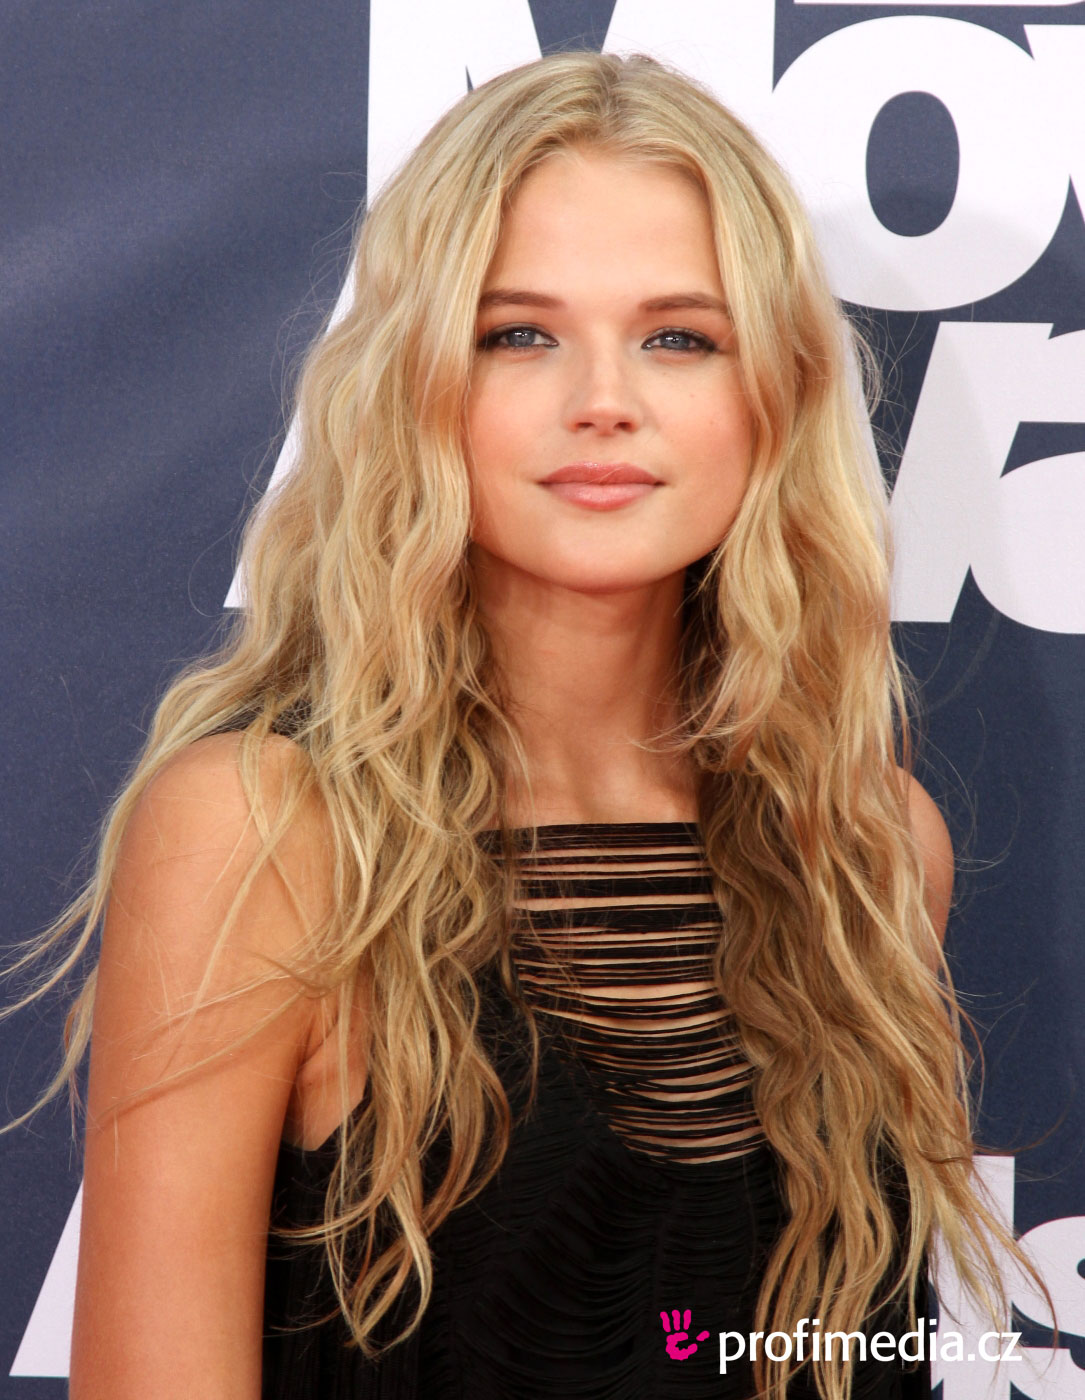 Movie actress Gabriella Wilde - age: 32